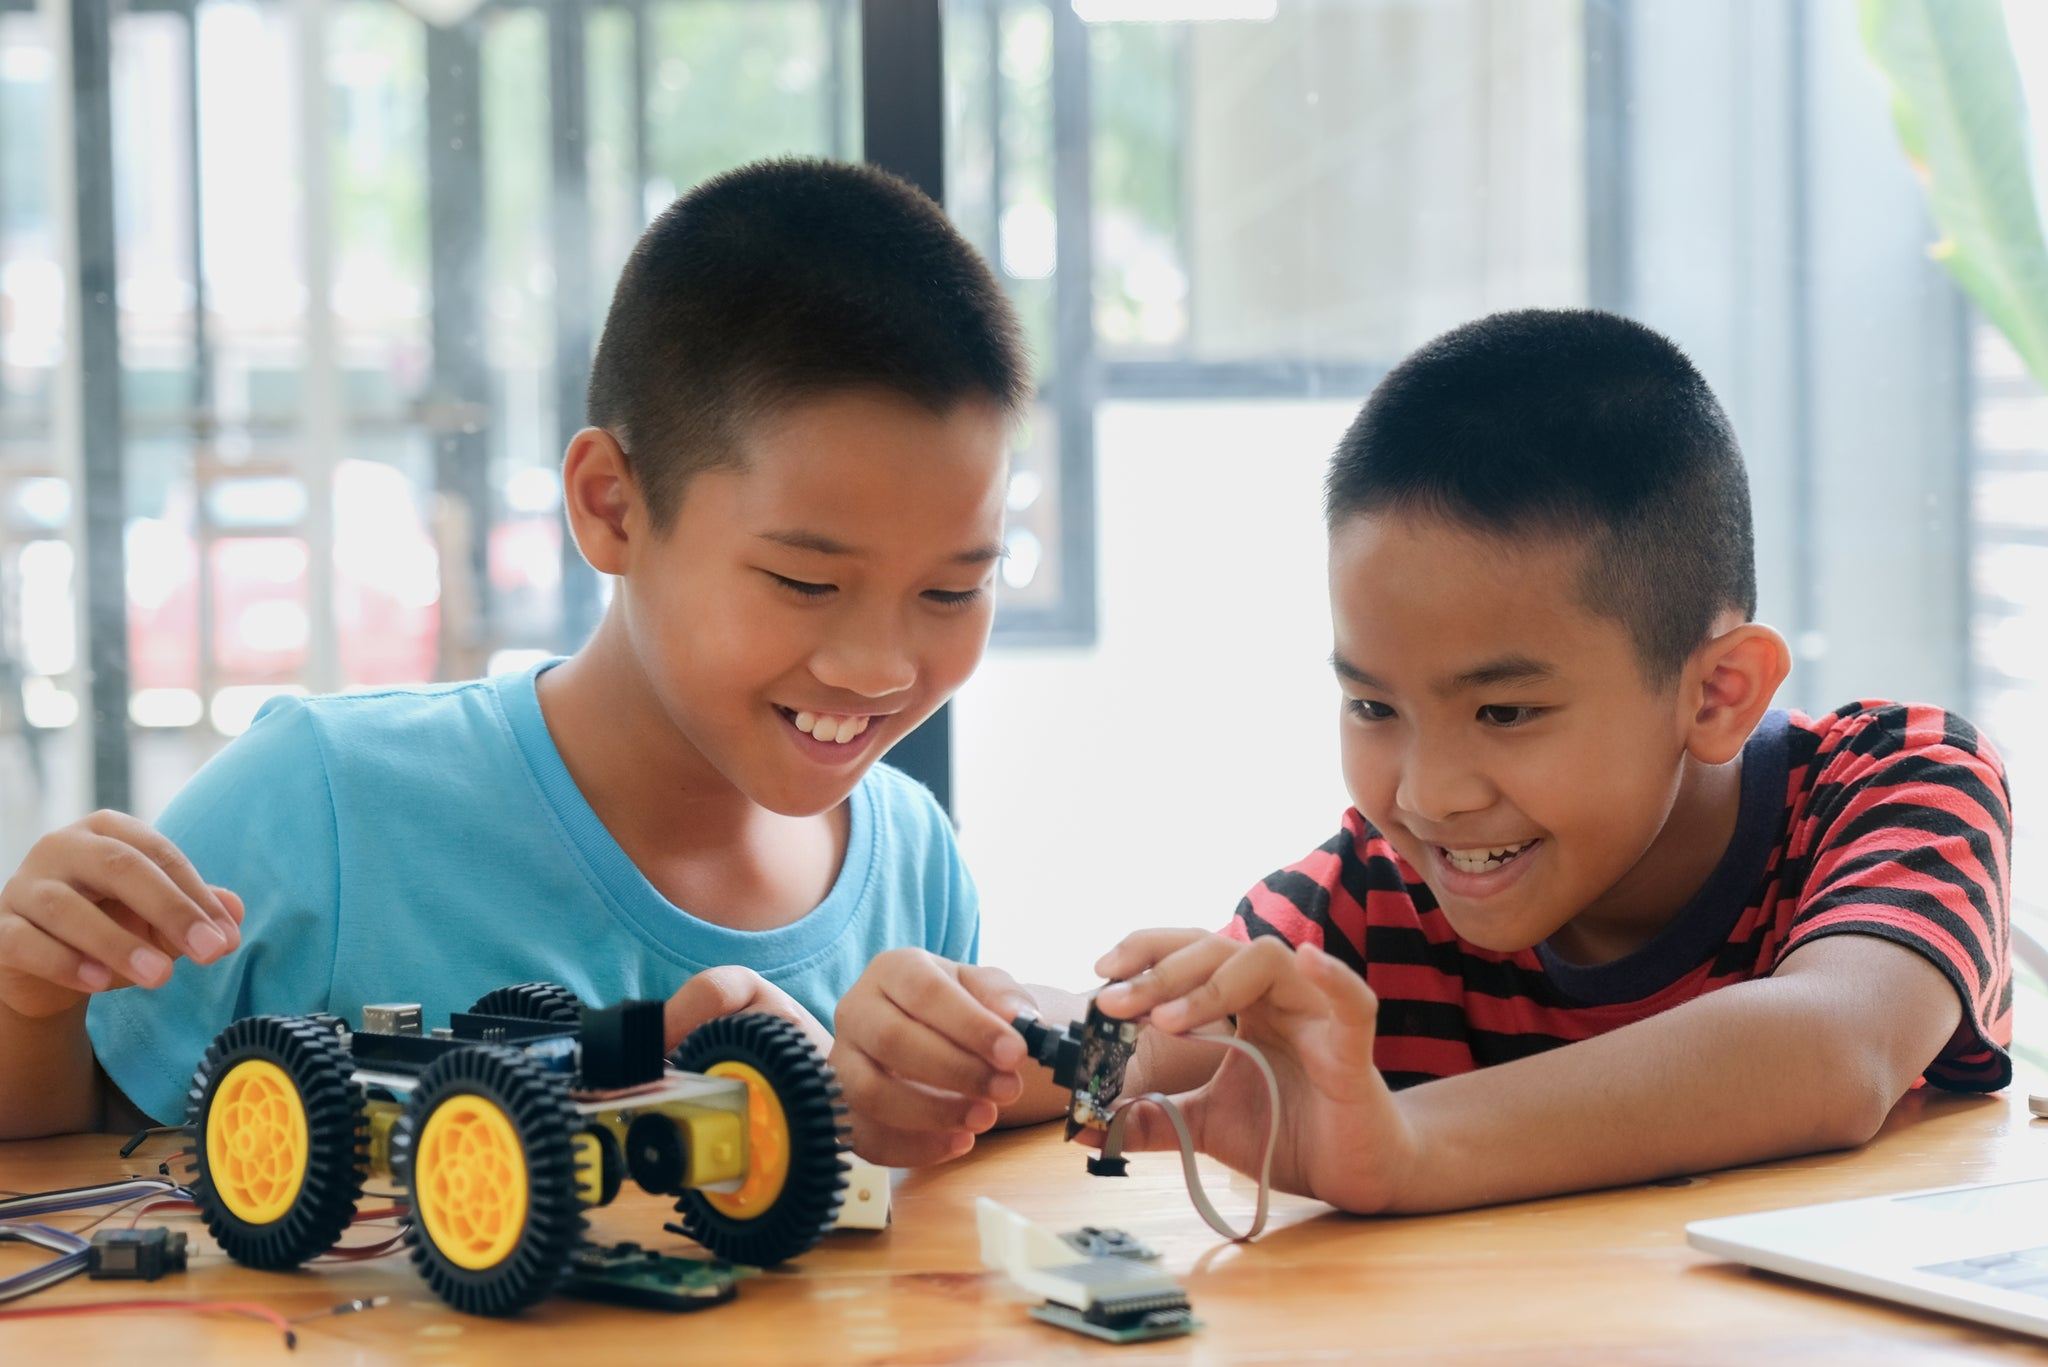 Lego Robotics For Early Childhood Development